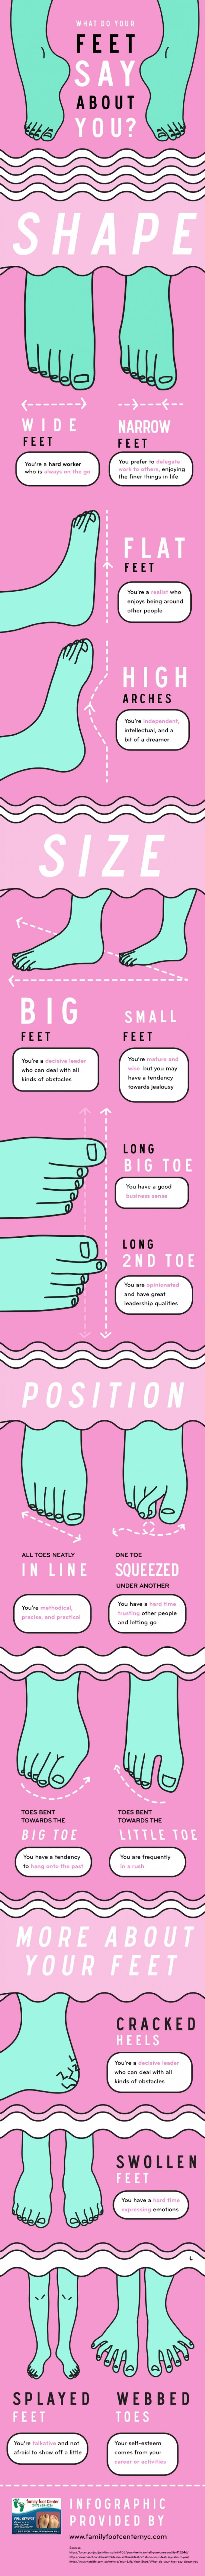 What Do Your Feet Say About You?